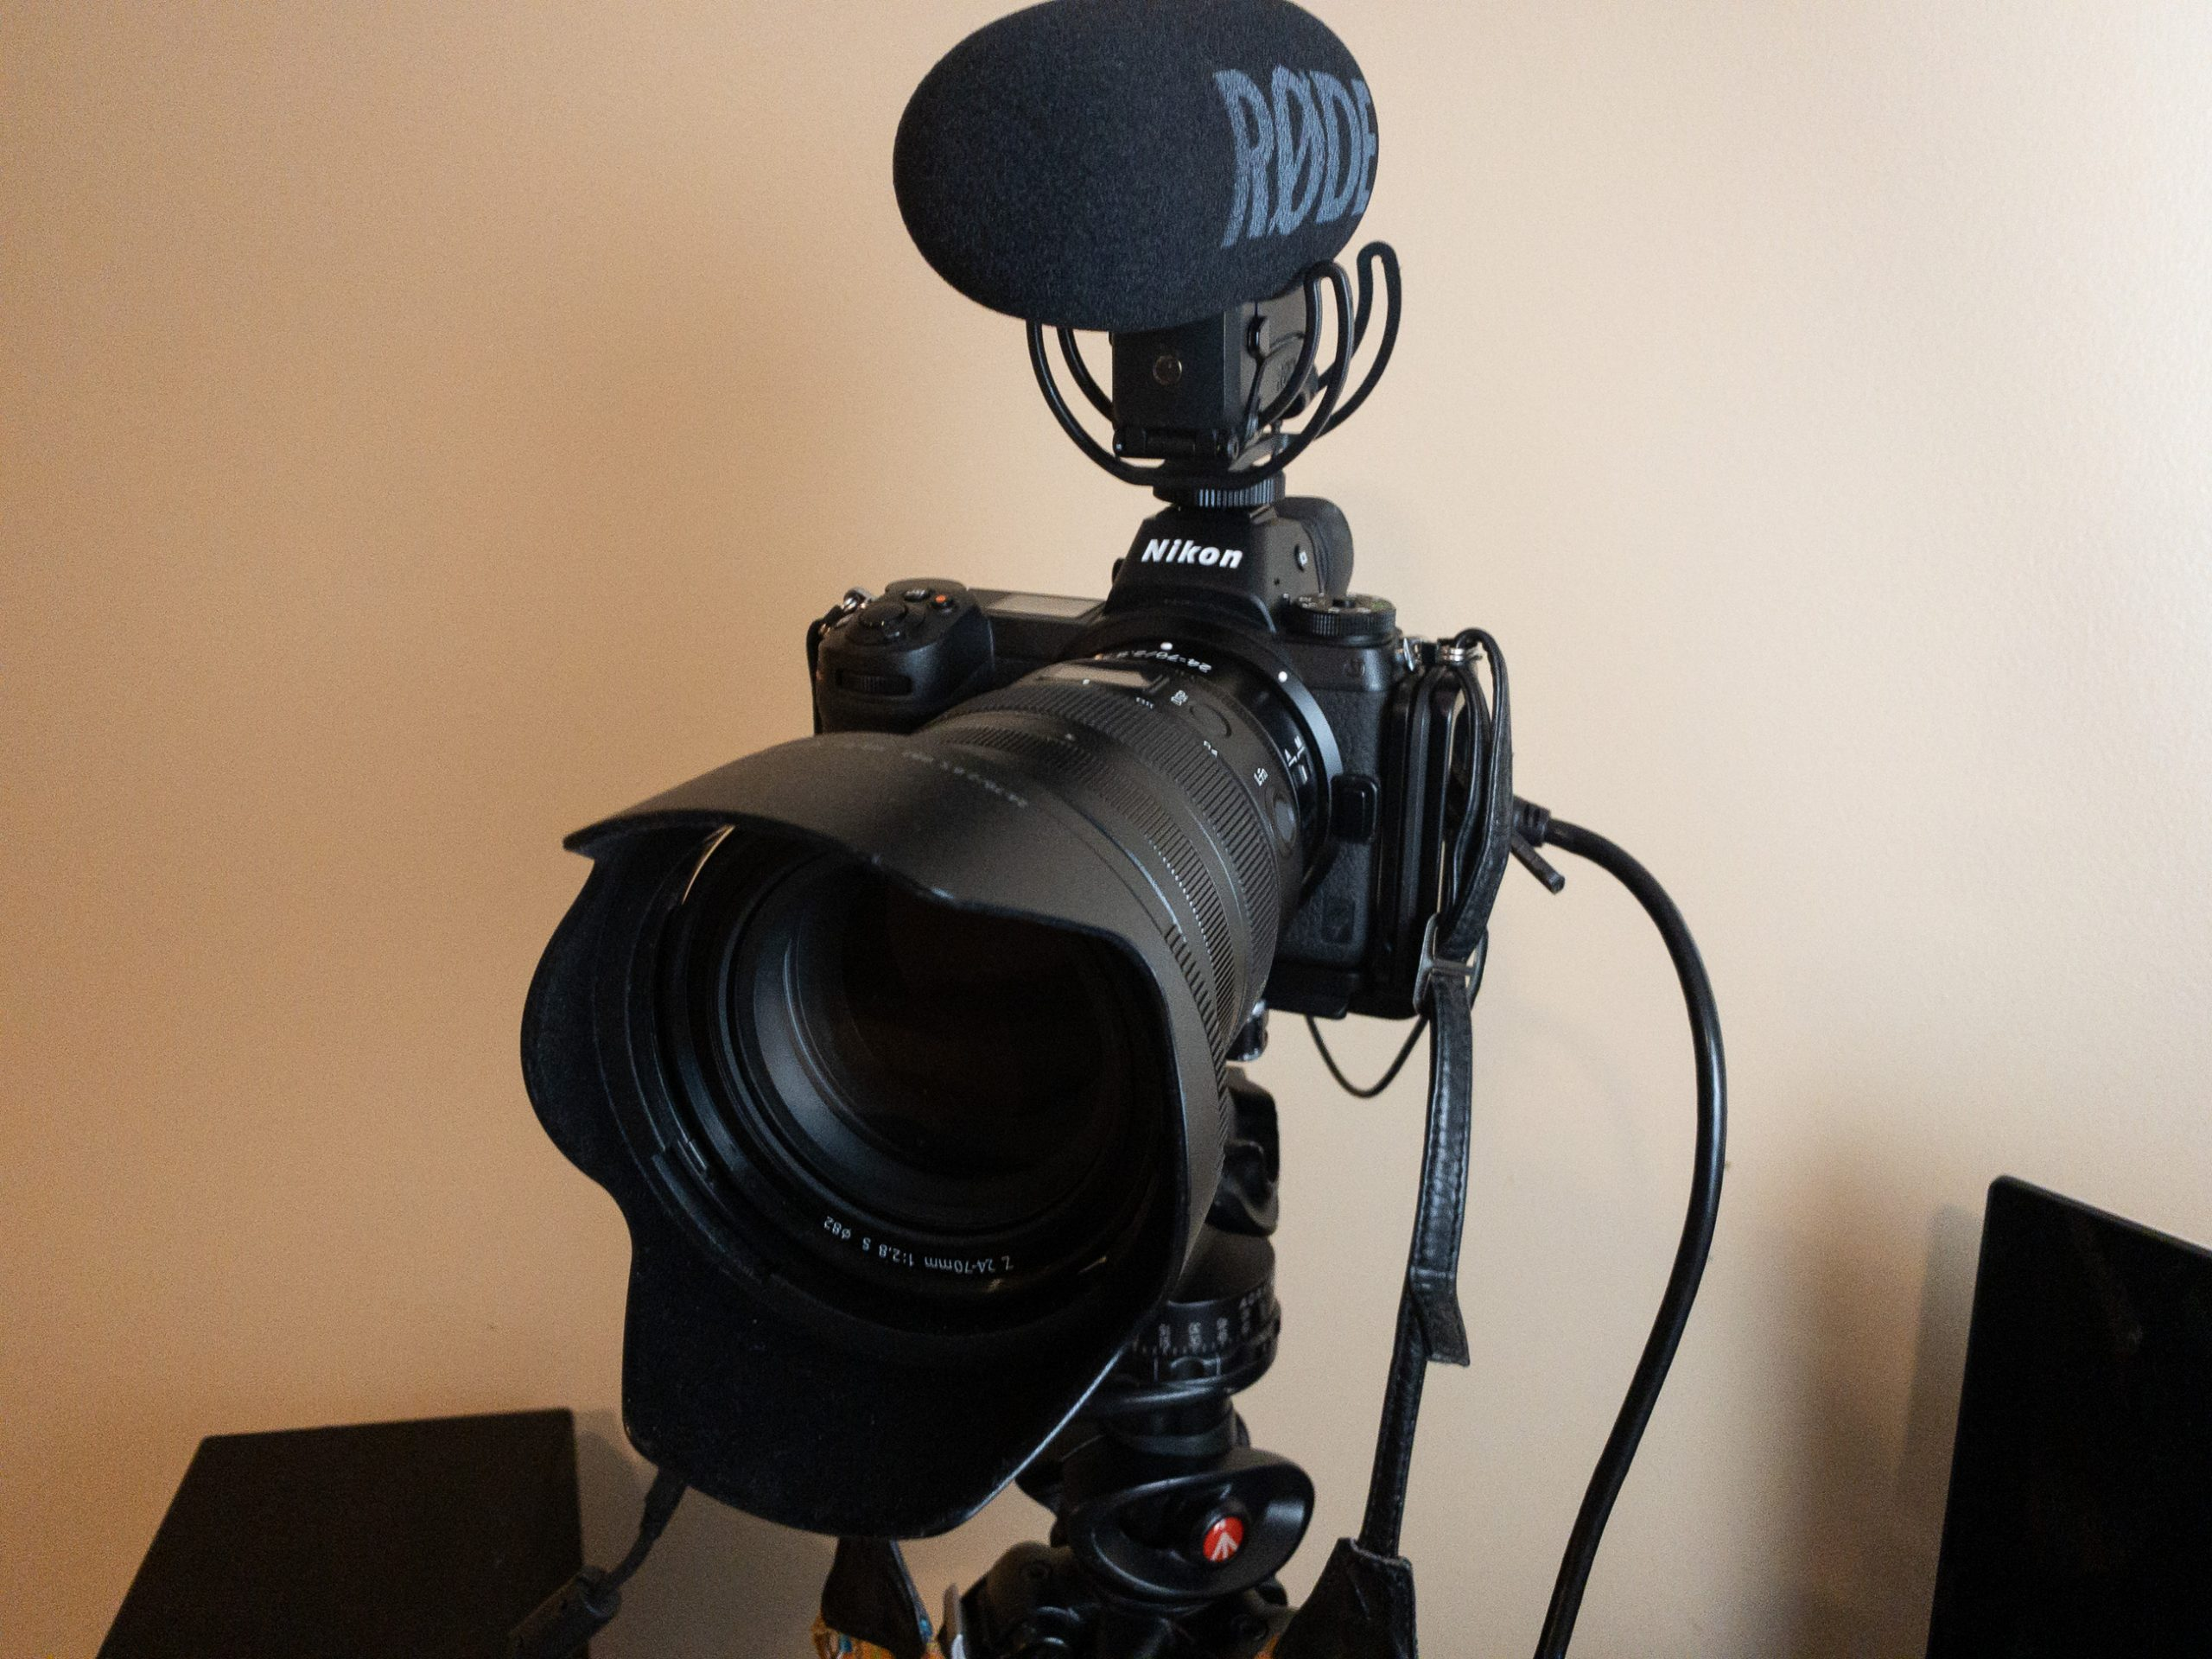 Camera tethered for video streaming with shotgun microphone